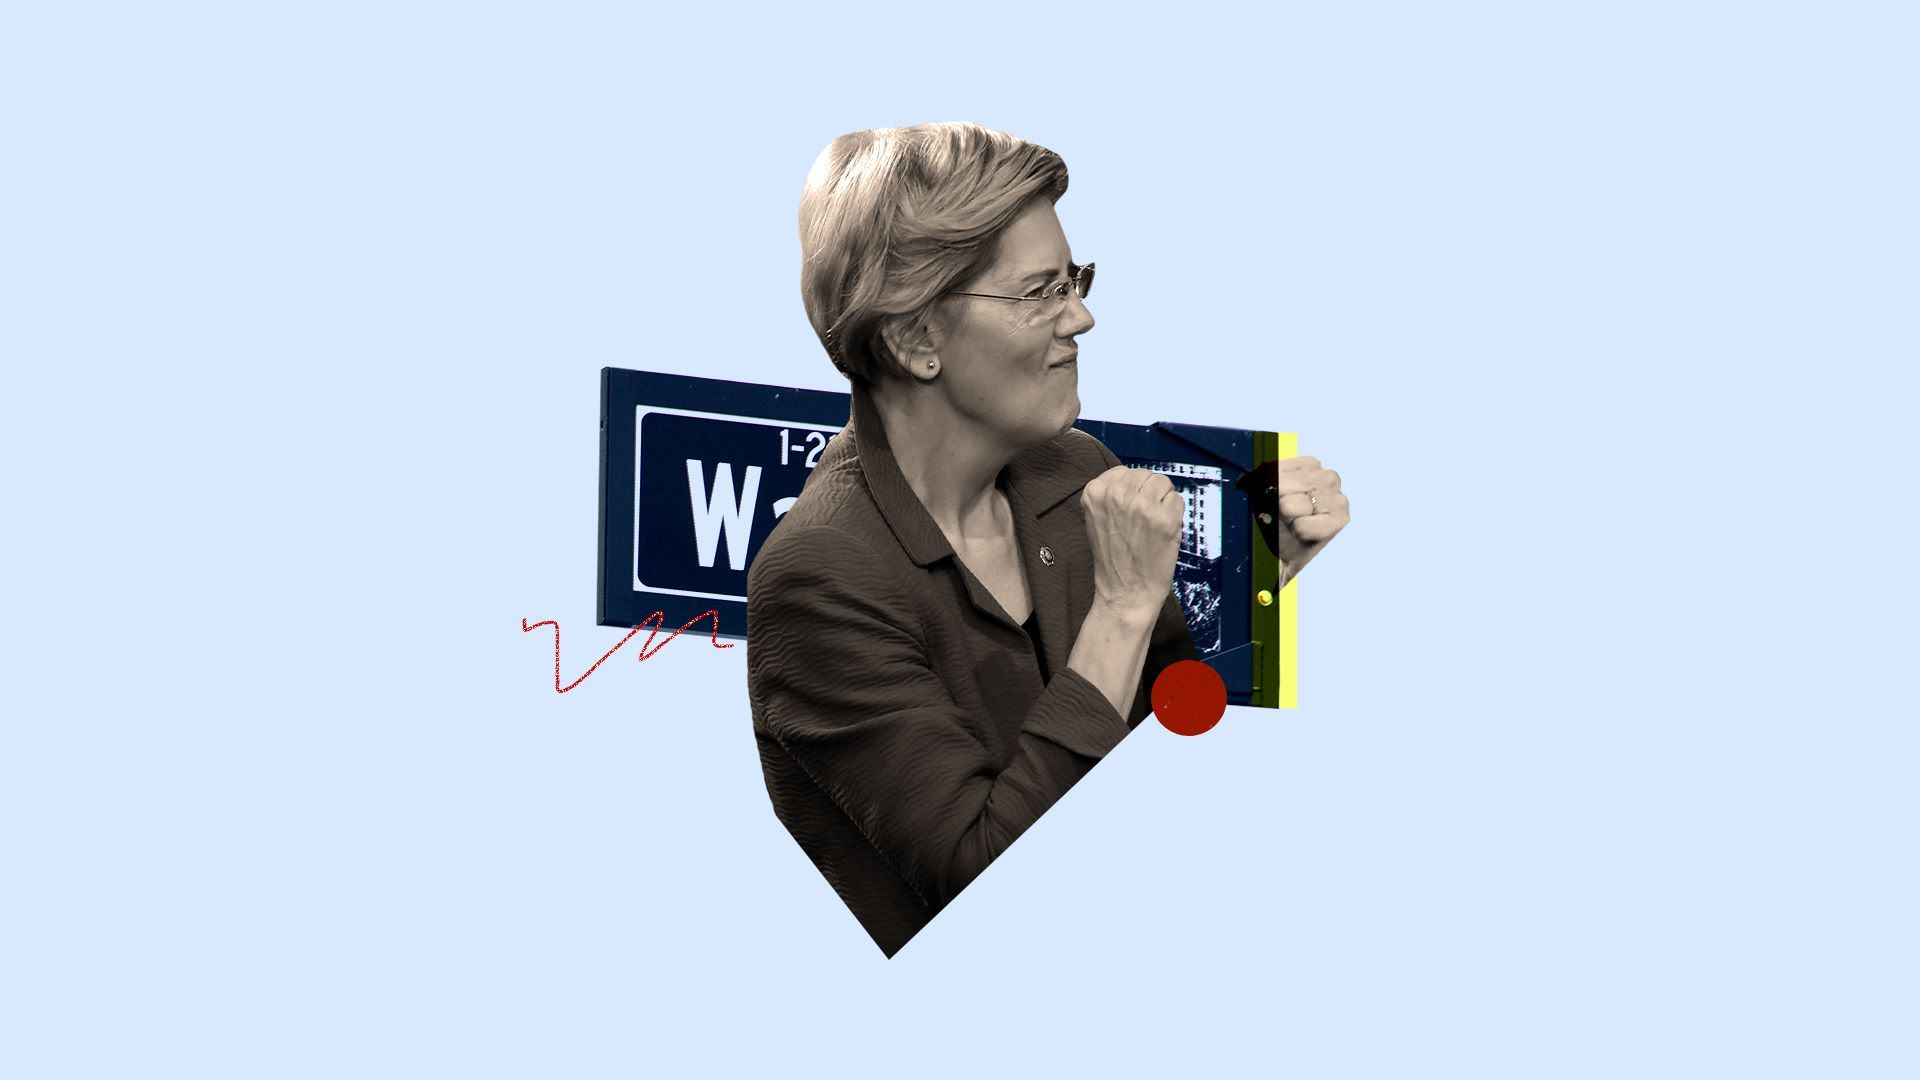 An illustration of Warren holding one of her signs.